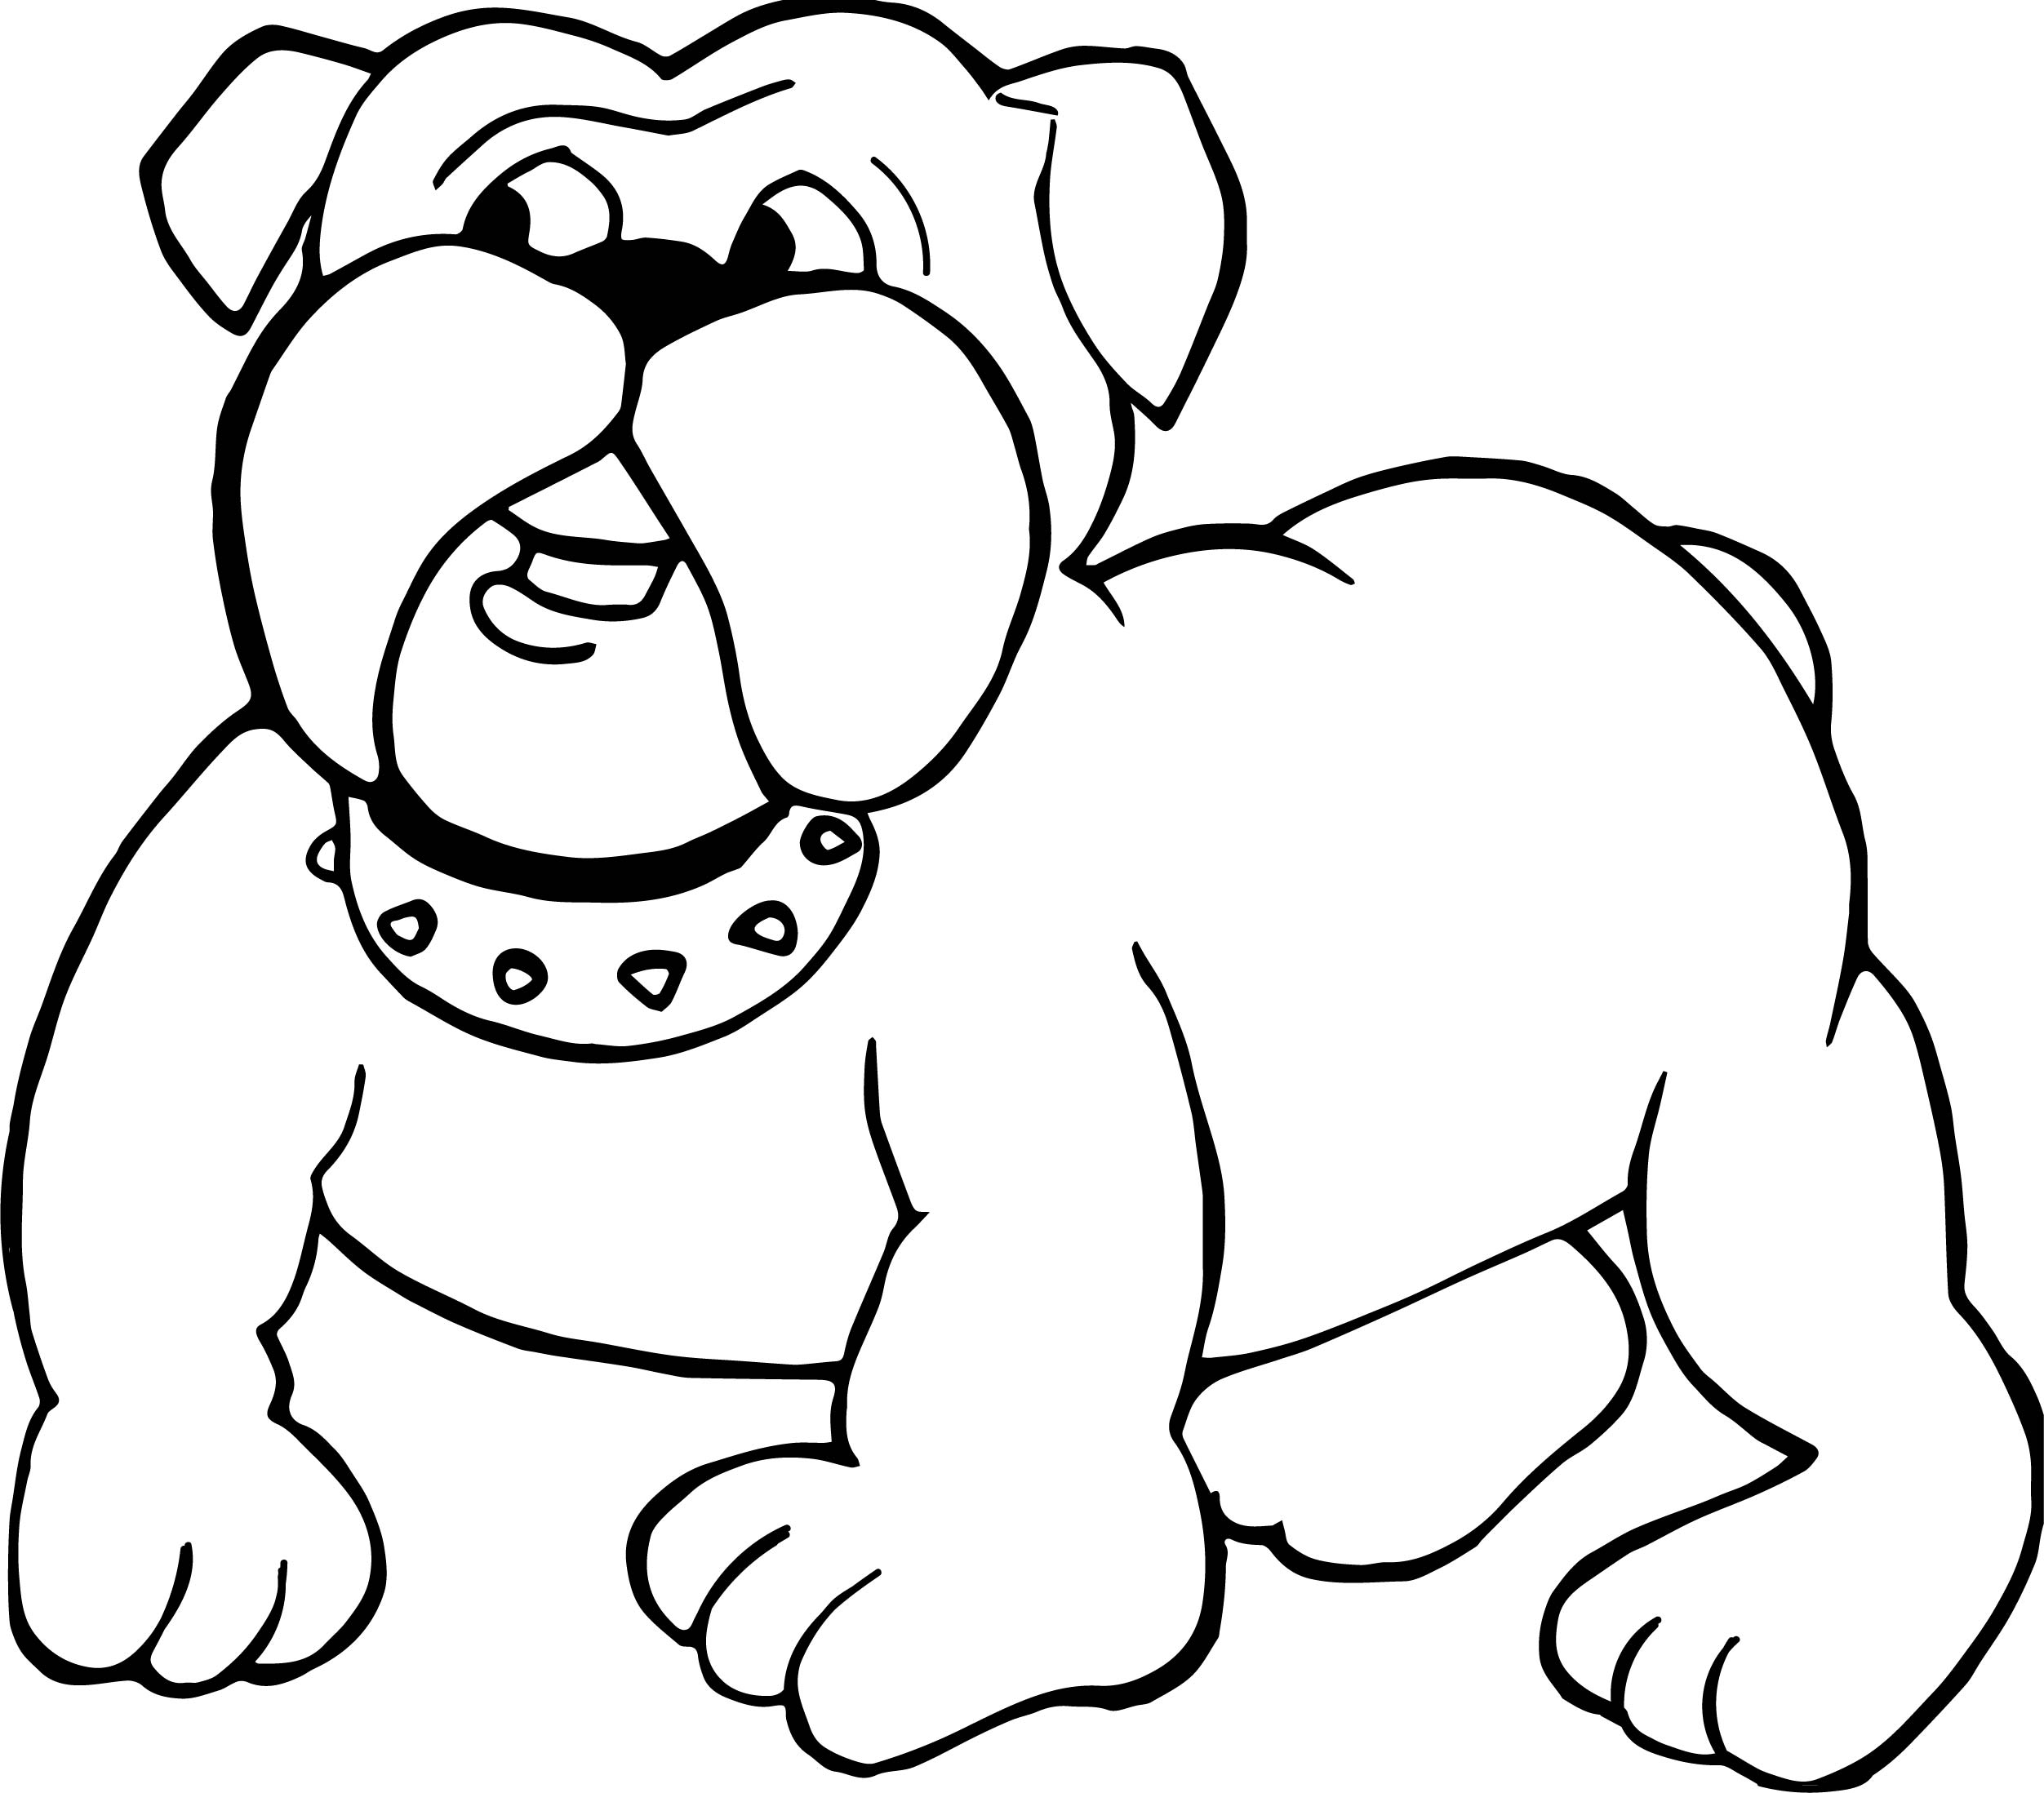 bull puppy coloring pages - photo#19